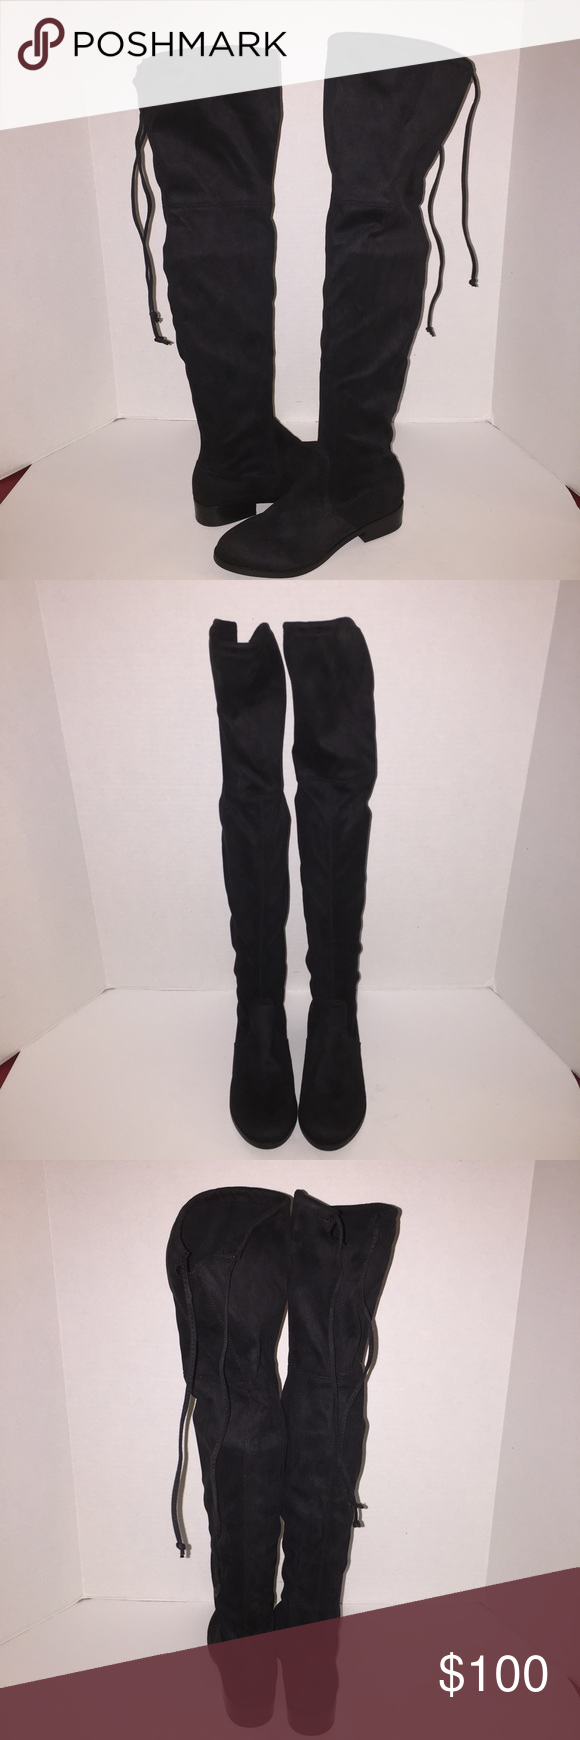 52eda23a6e3 Steve Madden Orlene Over The Knee Boots 6.5 New no box , no trades ...